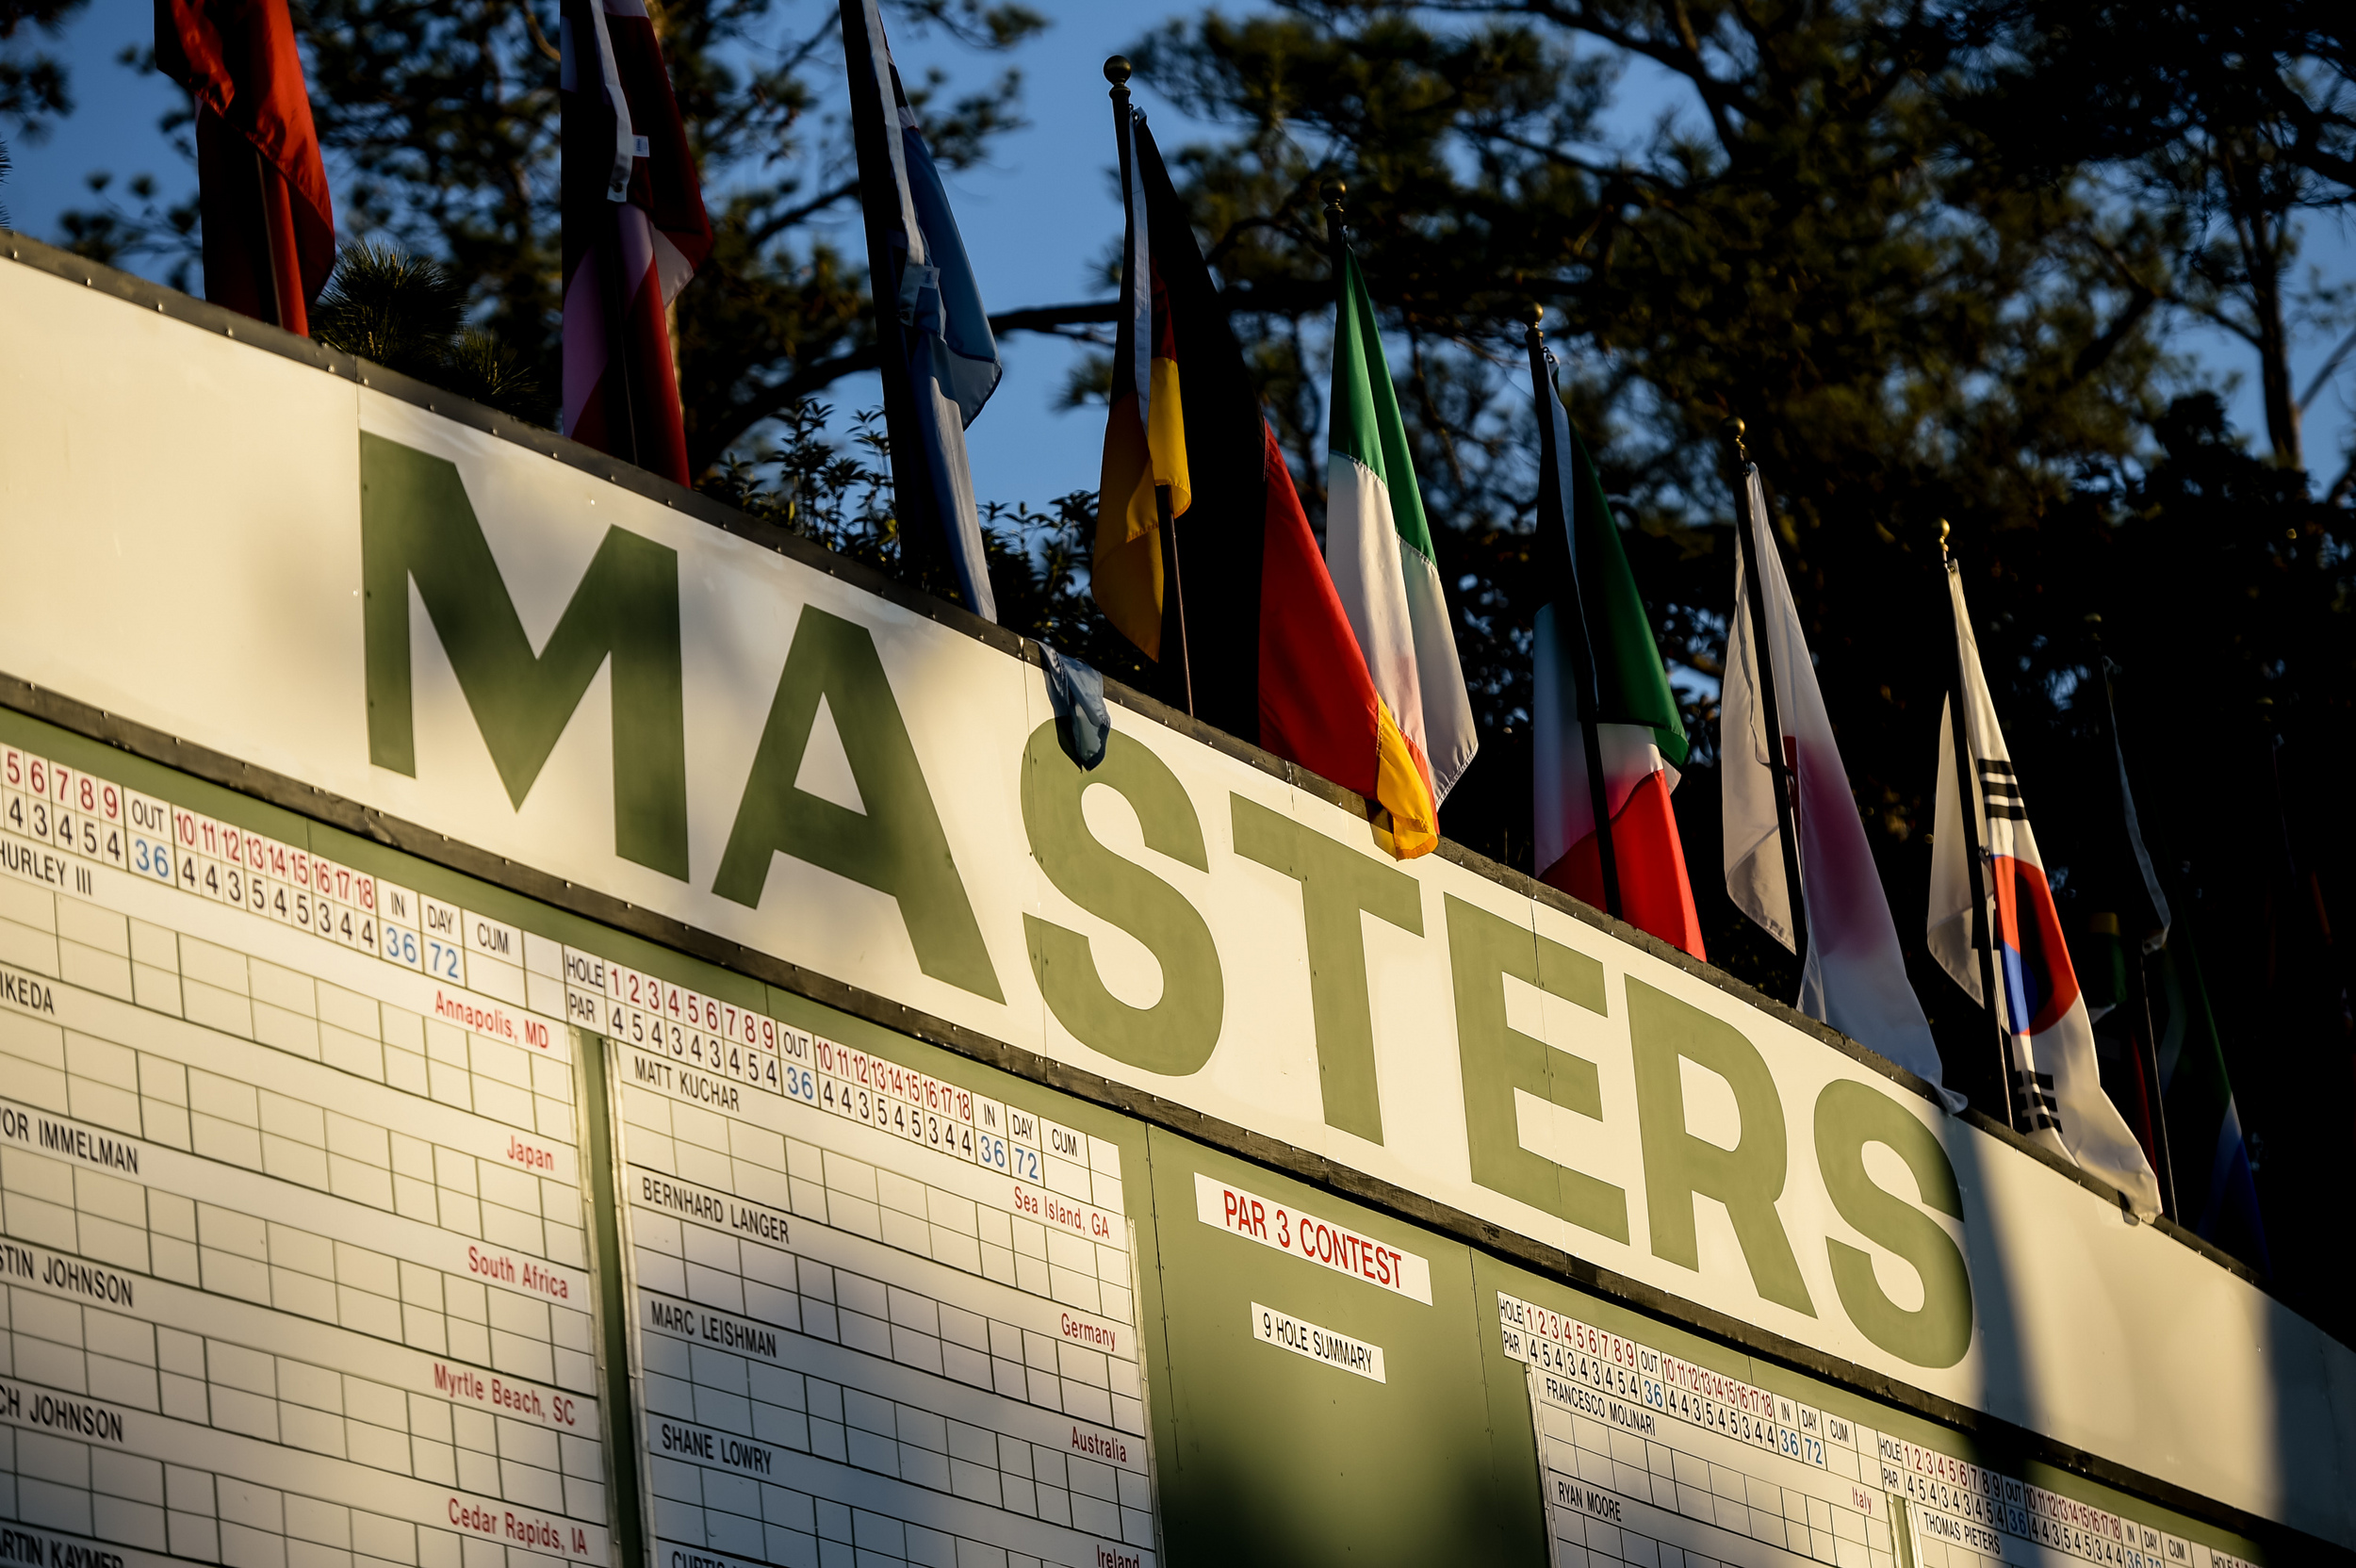 Graeme Mcdowell Collin Morikawa Among Four Joining 2020 Masters Field 2021 Masters